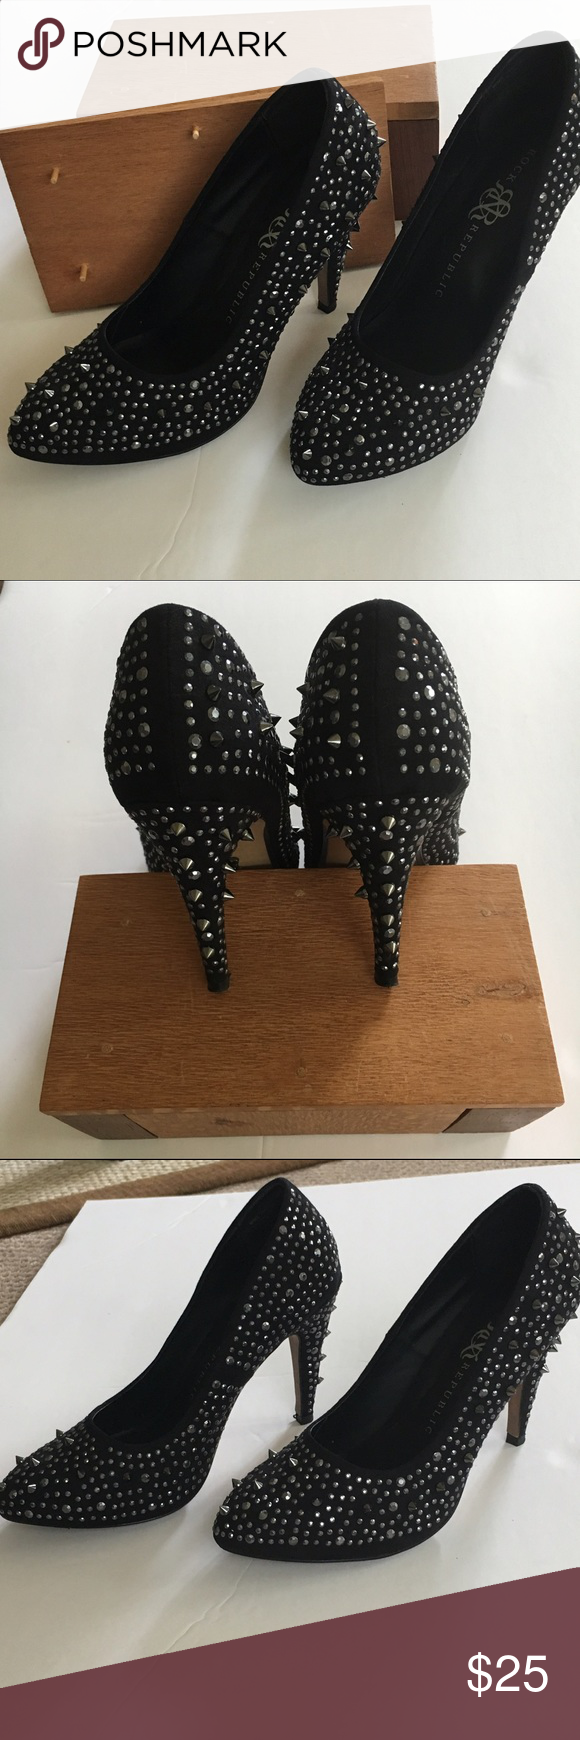 ROCK N REPUBLIC AYANA BLACK STUDDED PUMPS  ROCK AND REPUBLIC AYANA BLACK STUDDED PUMPS . Classic yet fiercely wonderful. Size 7.5 Heel Height 4 inches  Preloved  by me in excellent condition. Worn 3 times  Rock & Republic Shoes Heels